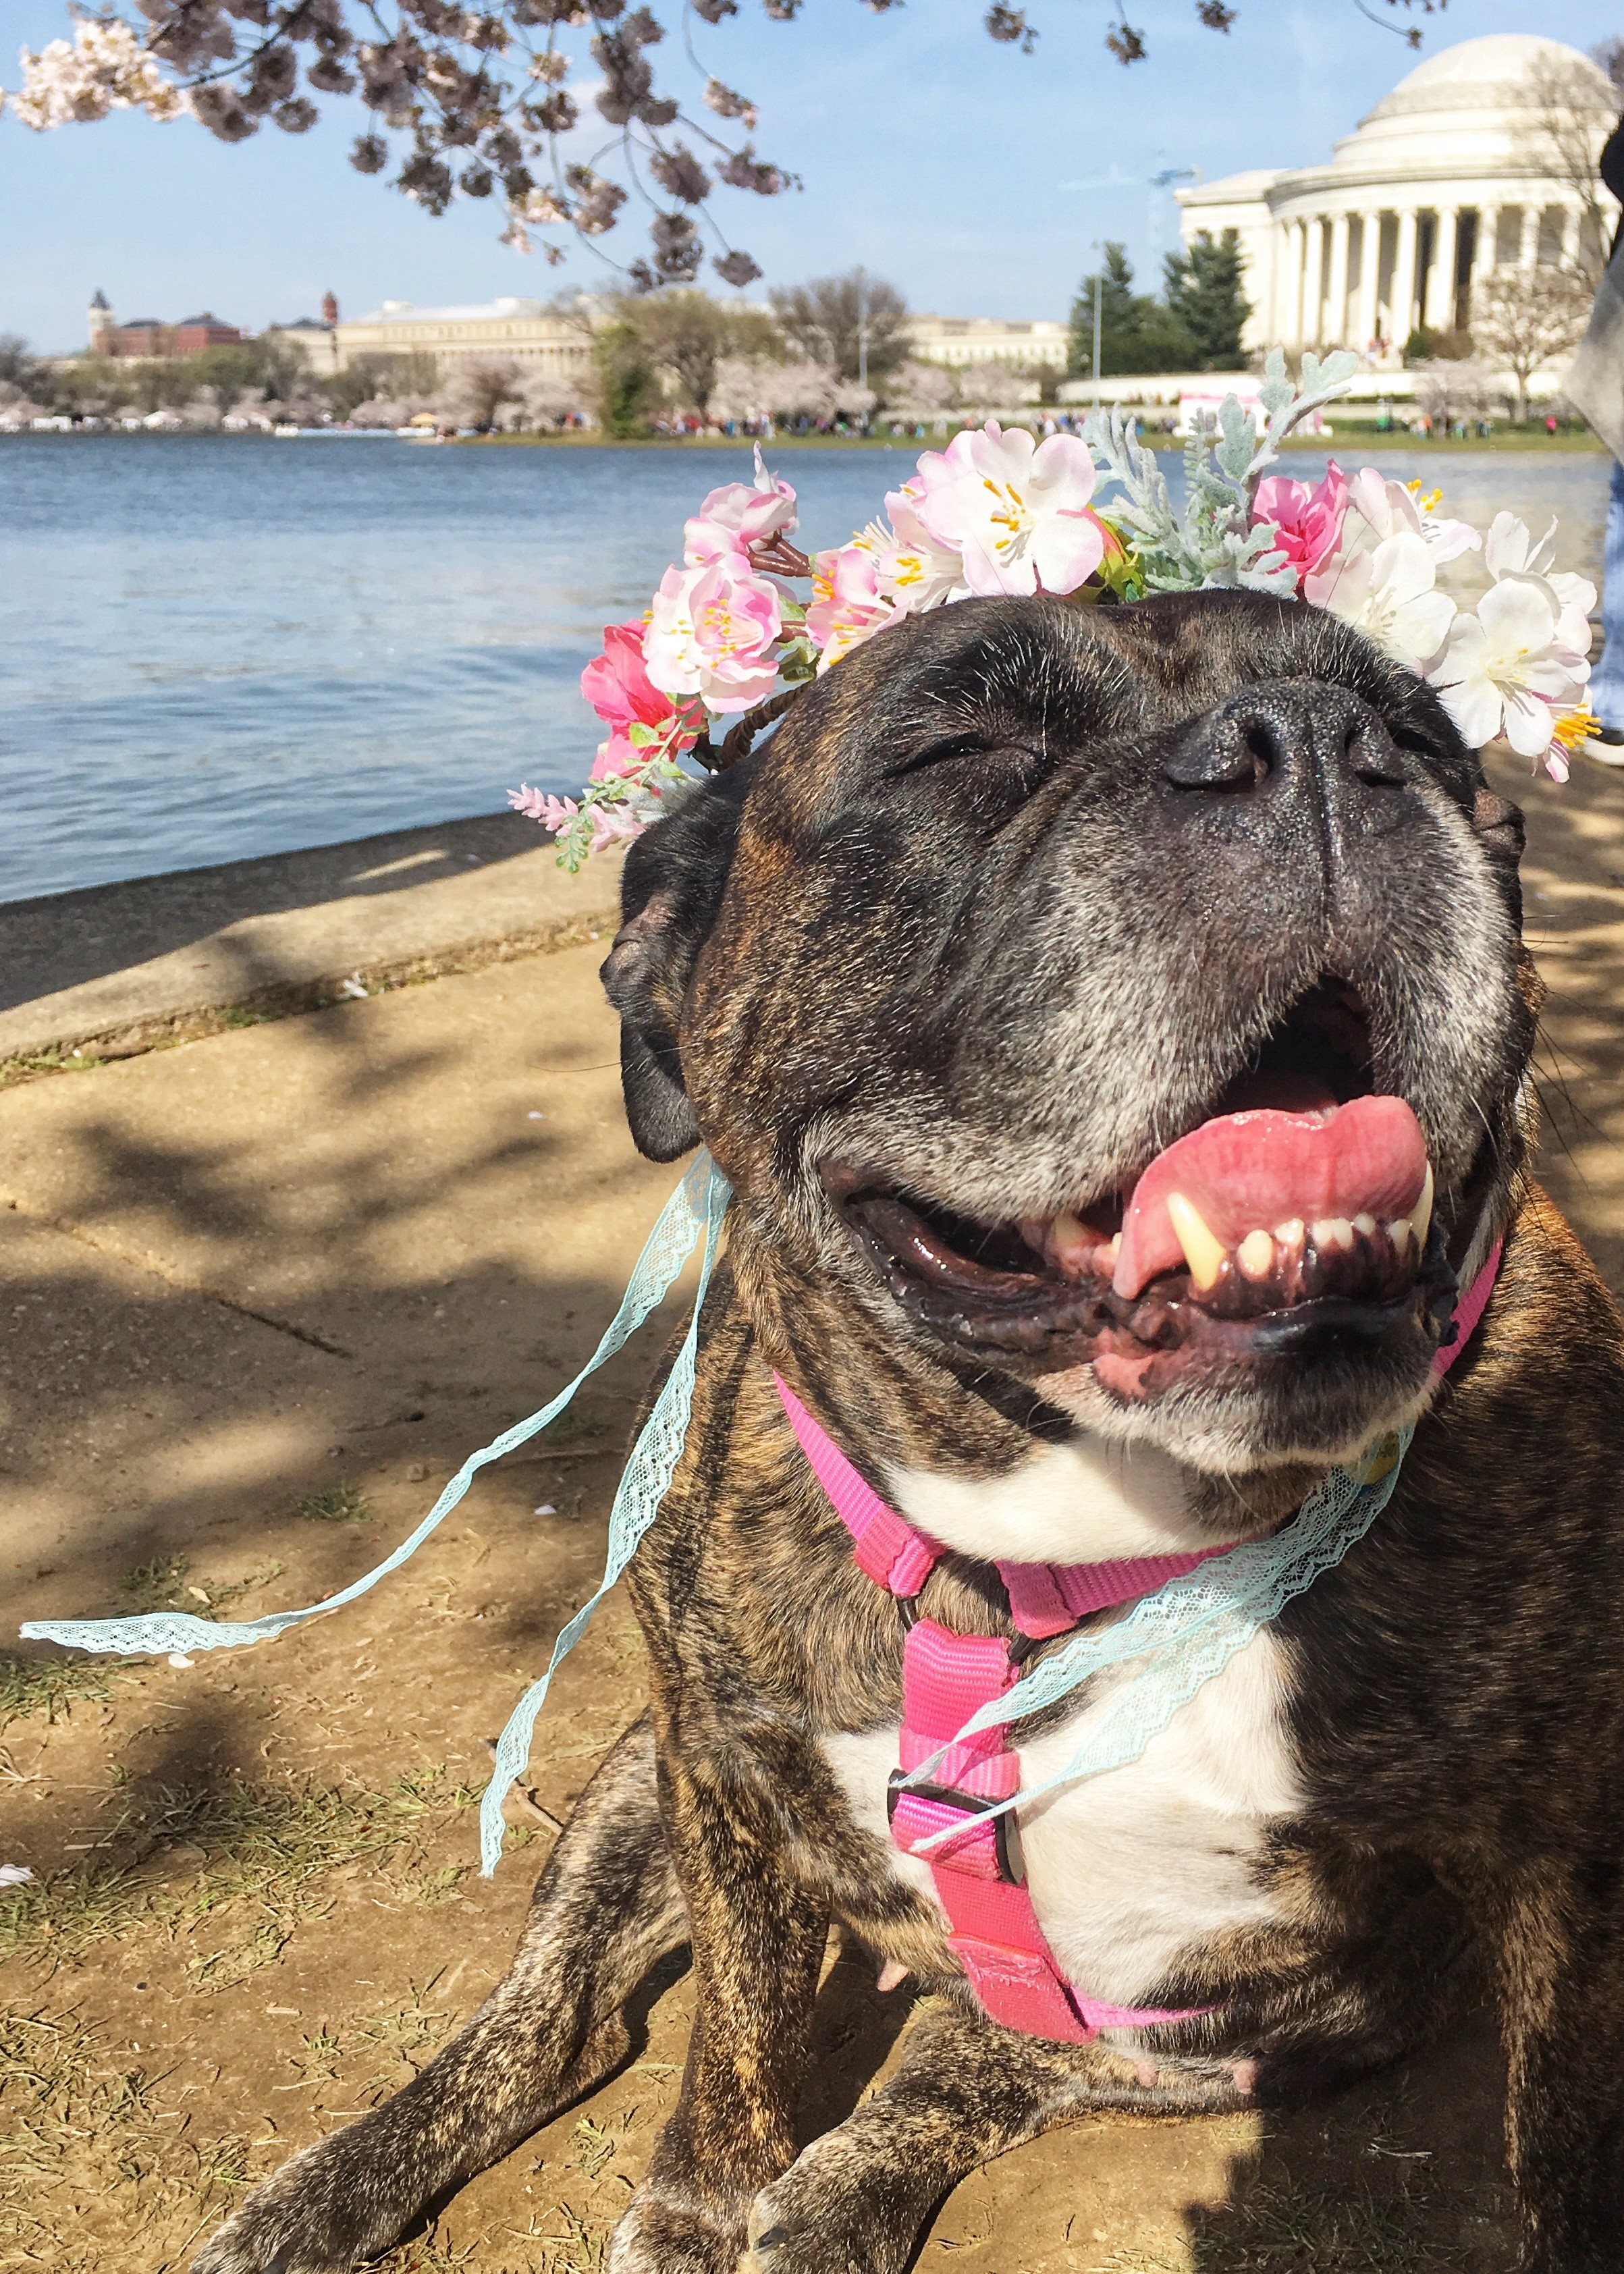 In honor of National Pet Day (which is basically like Christmas around here!) we checked in on a few of our favorite Instagram stars to see what they've been up to lately, and we noticed many of them had paid a visit to D.C.'s beloved blossoms. So for this week's special RUFFined Spotlight, we give you some adorable four-legged admirers of the cherry blossoms! (Image: via IG user @rubycubethebulldog /{ }instagram.com/rubycubethebulldog/){ }